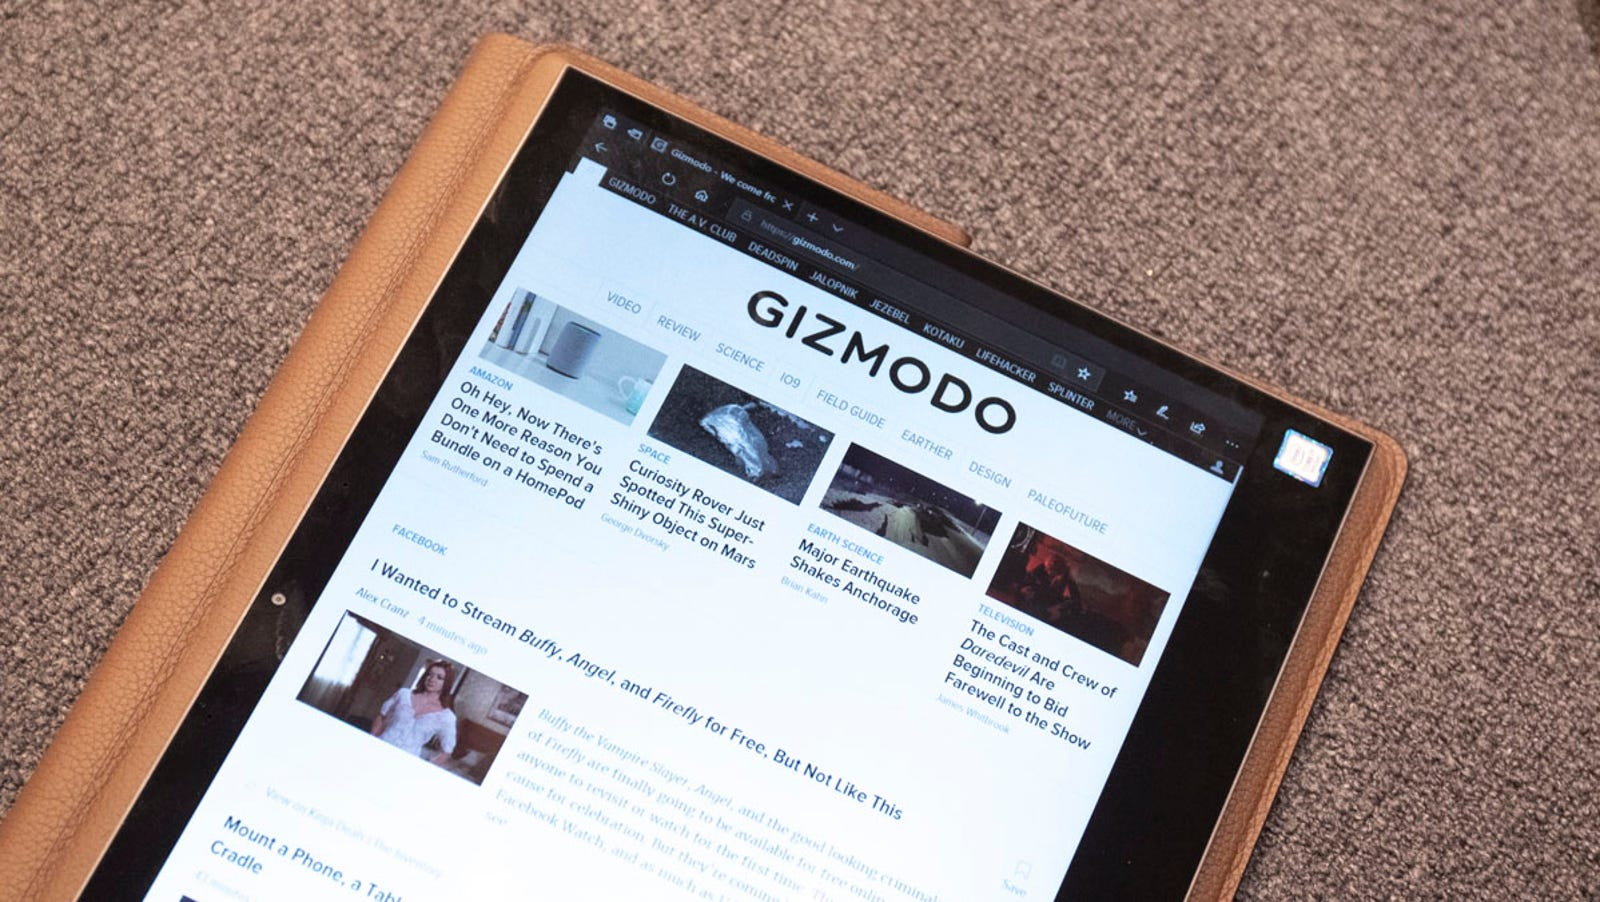 13.3-inches makes for a big tablet, but the large bezel makes for a comfortable grip while reading.